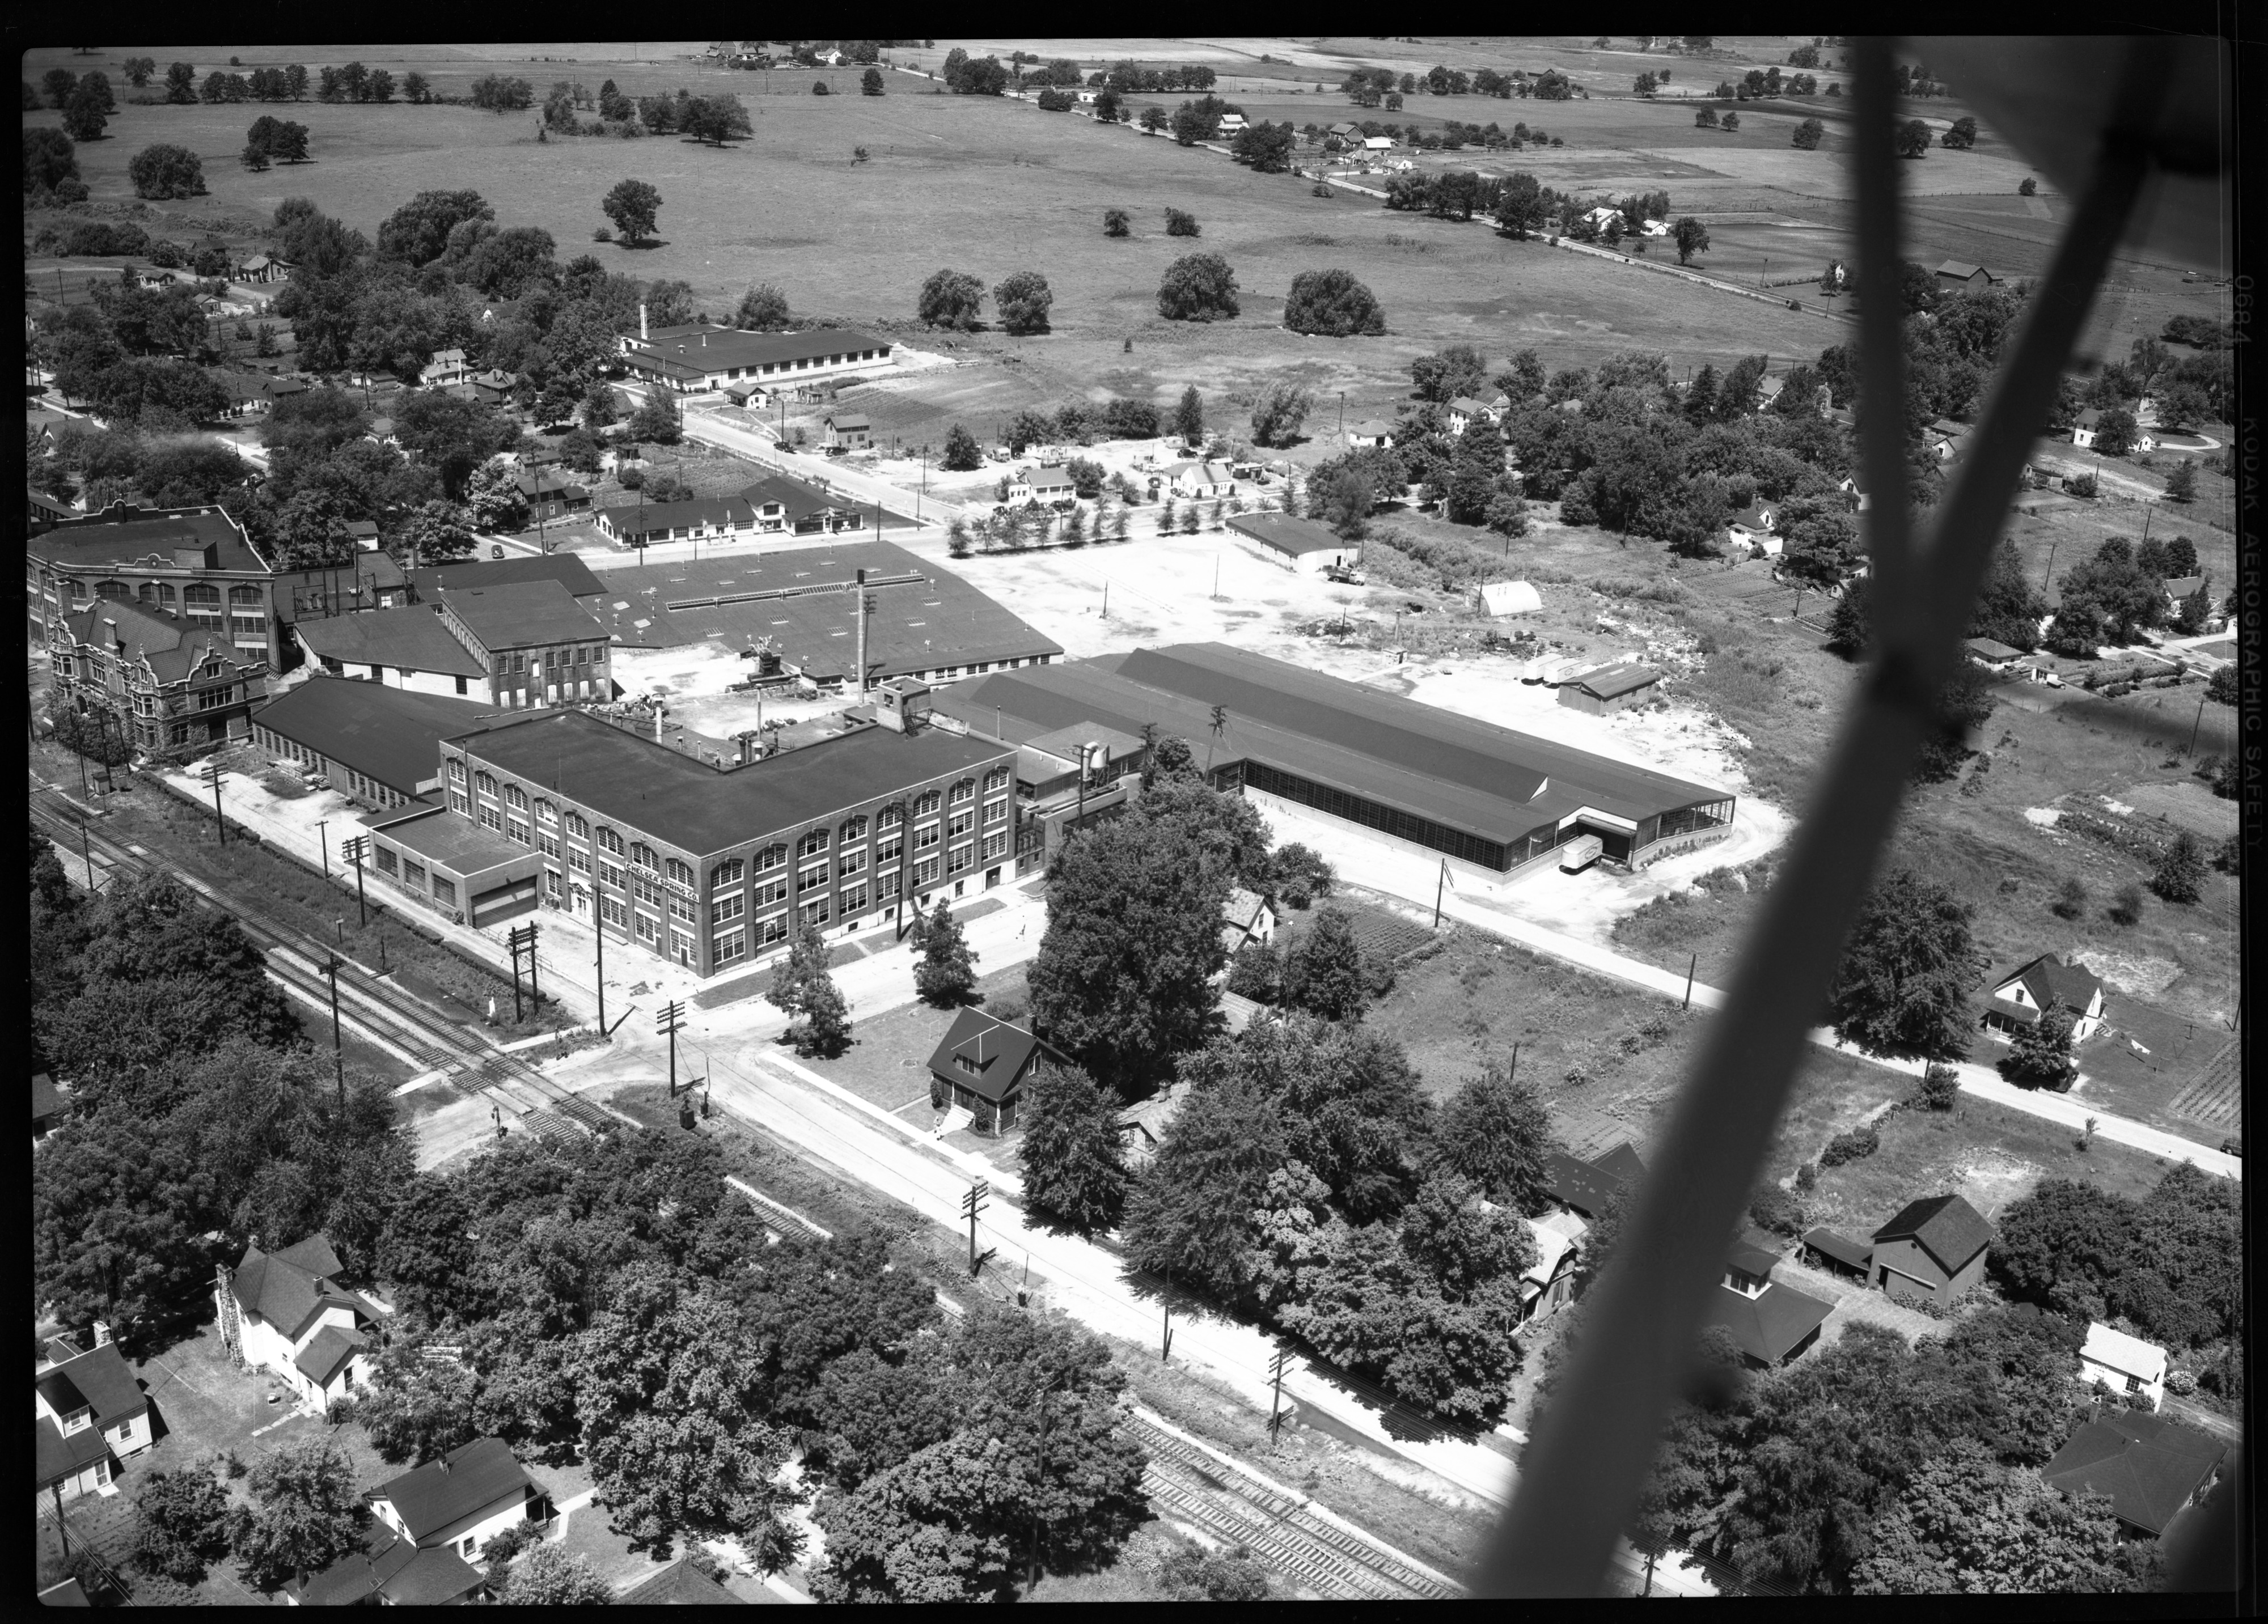 Aerial Photograph of the Chelsea Spring Co., June 1950 image